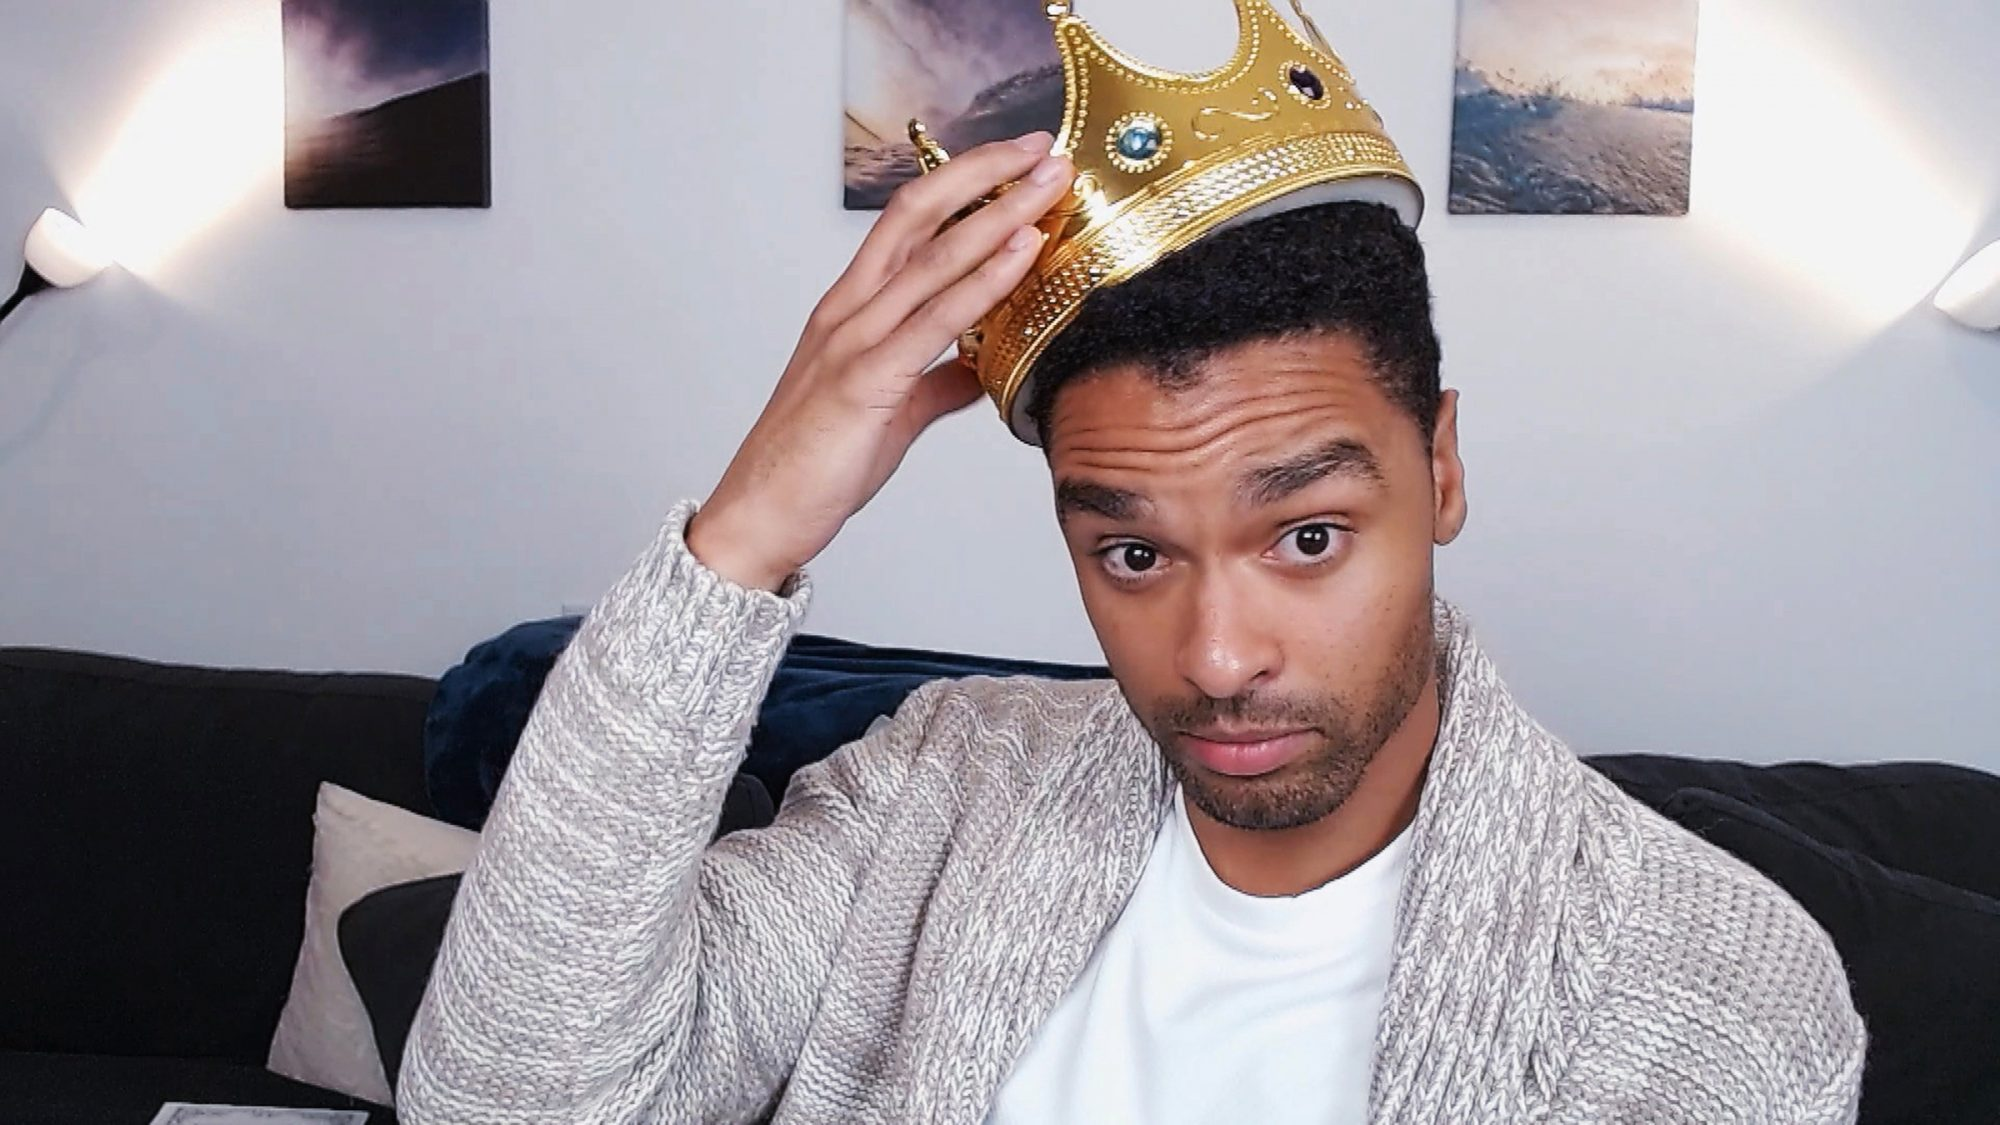 Regé-Jean Page plays Prince Charming during the Cinderella: A Comic Relief Pantomime for Christmas